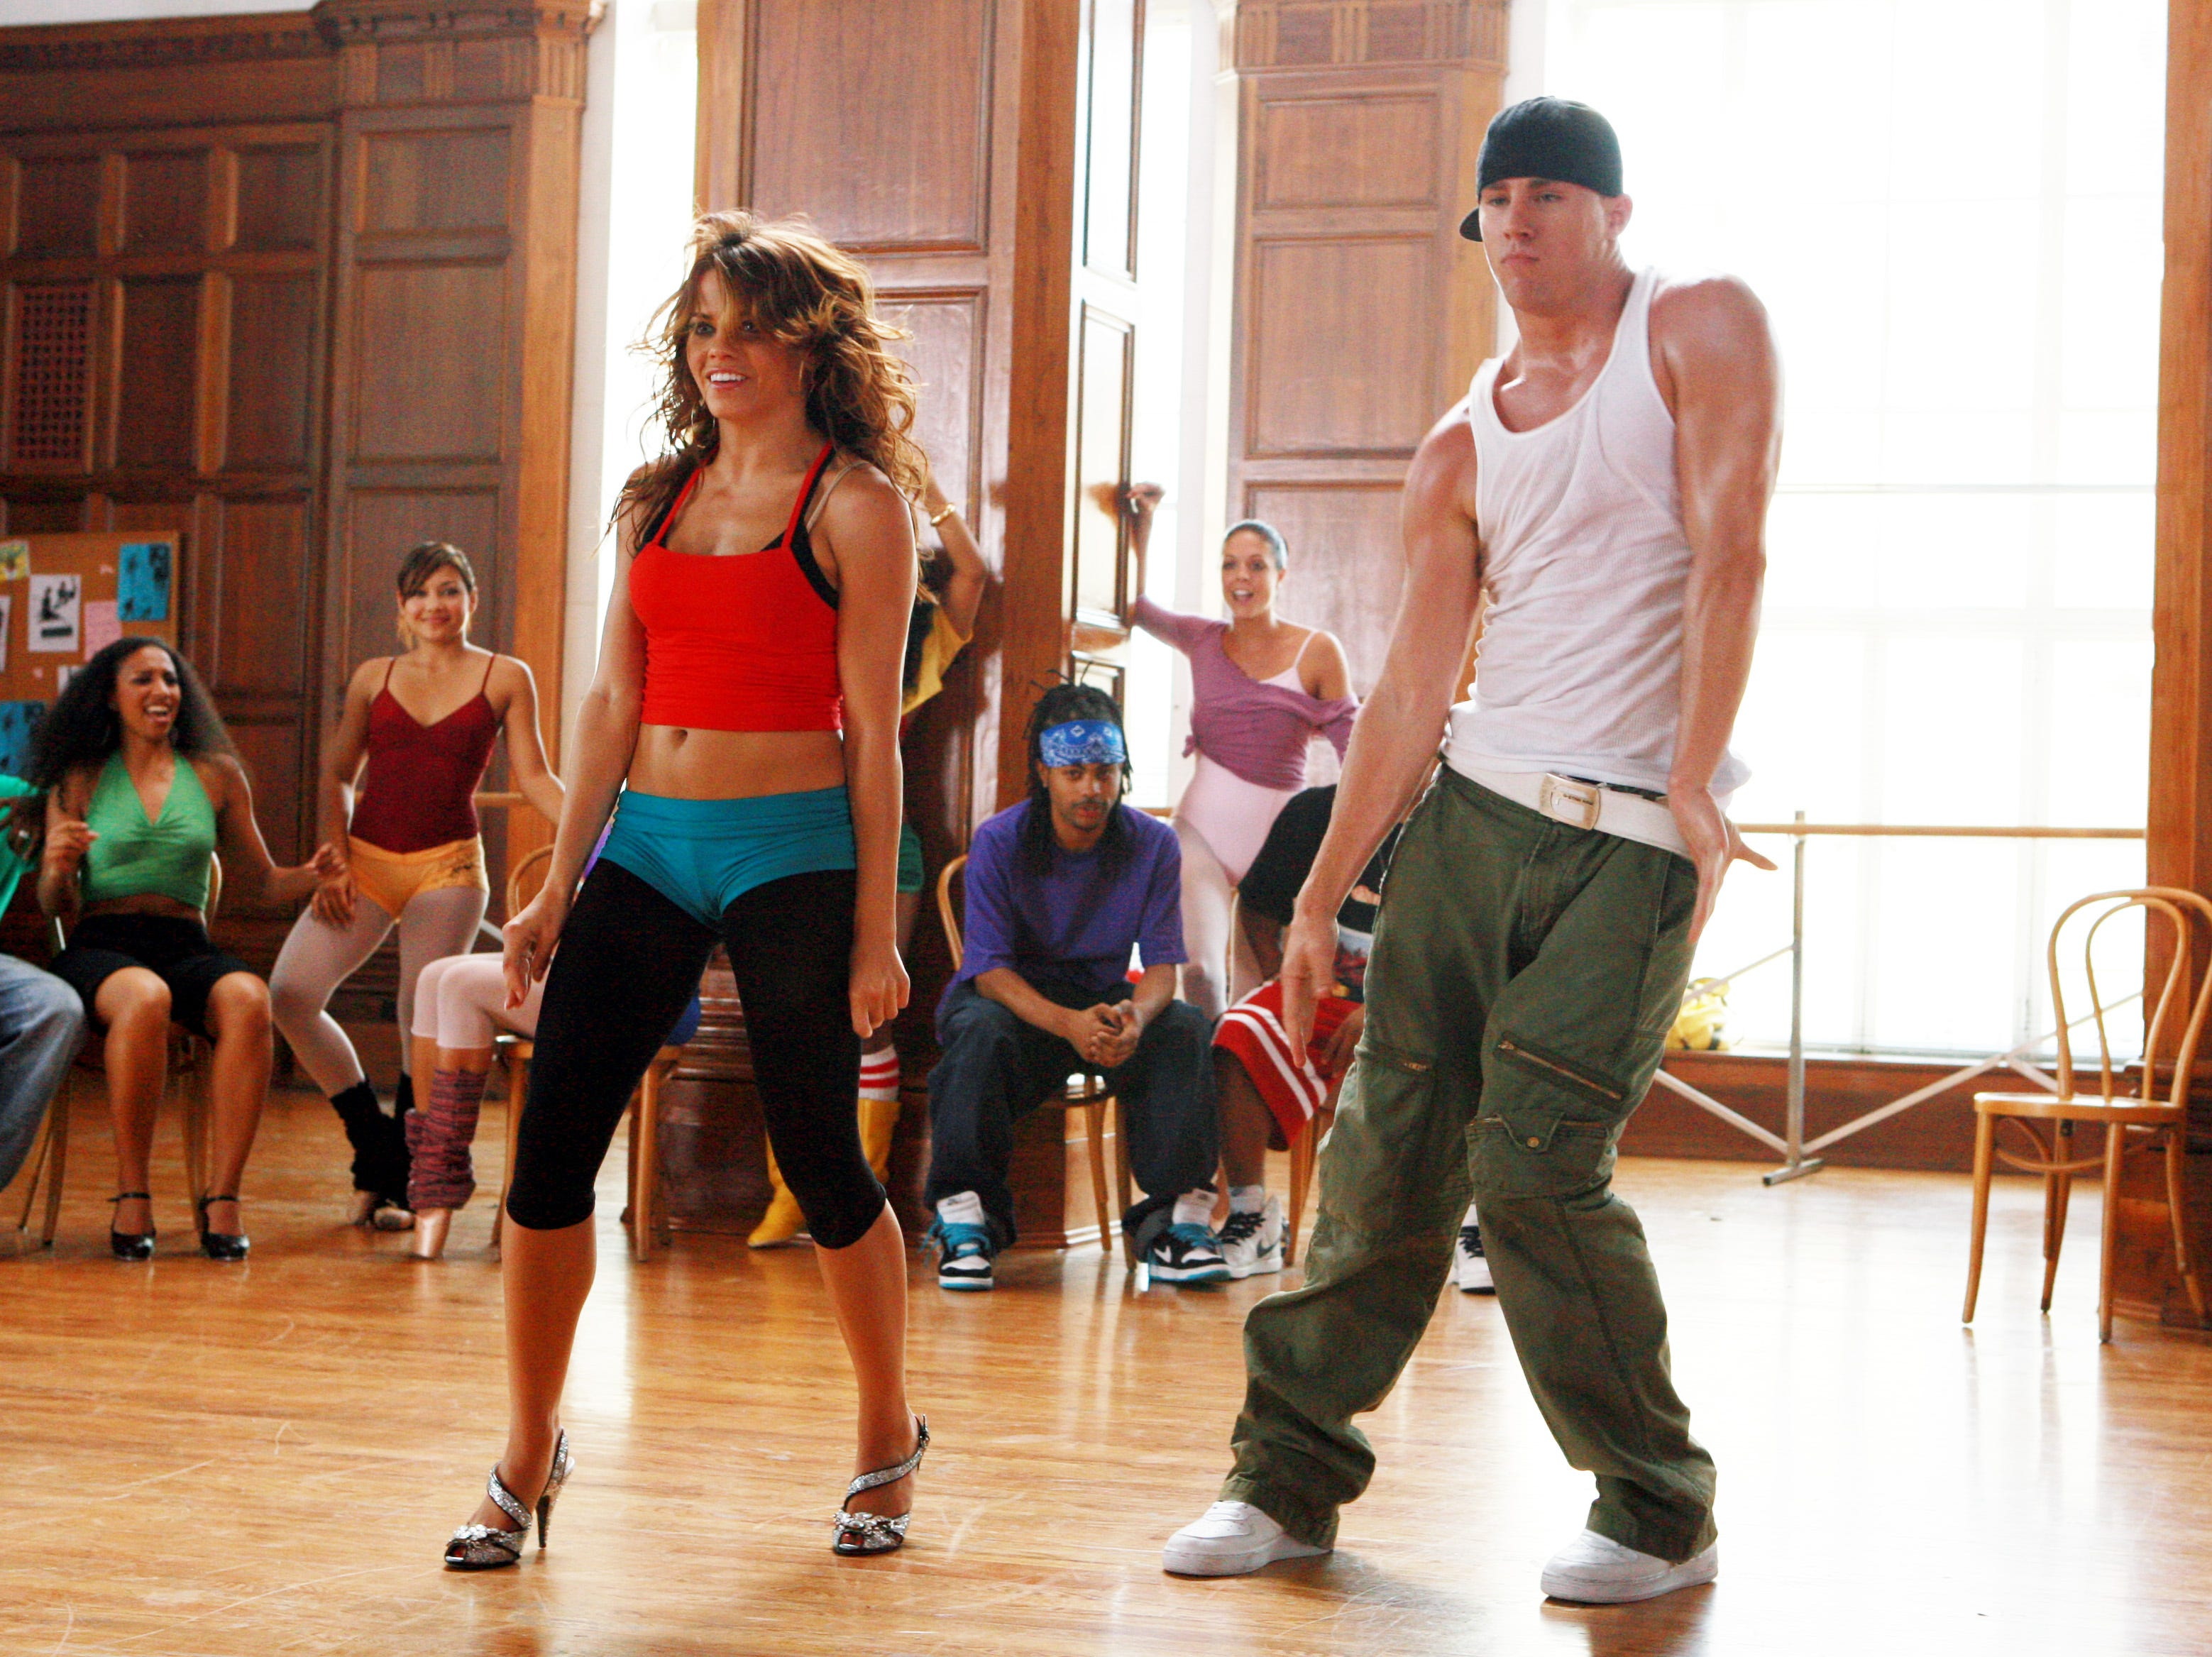 (L-R) Jenna Dewan and Channing Tatum in a scene from the motion picture Step up. --- DATE TAKEN: rec'd 07/06  By ERIC CHARBONNEAU   Disney        HO      - handout   ORG XMIT: ZX50554